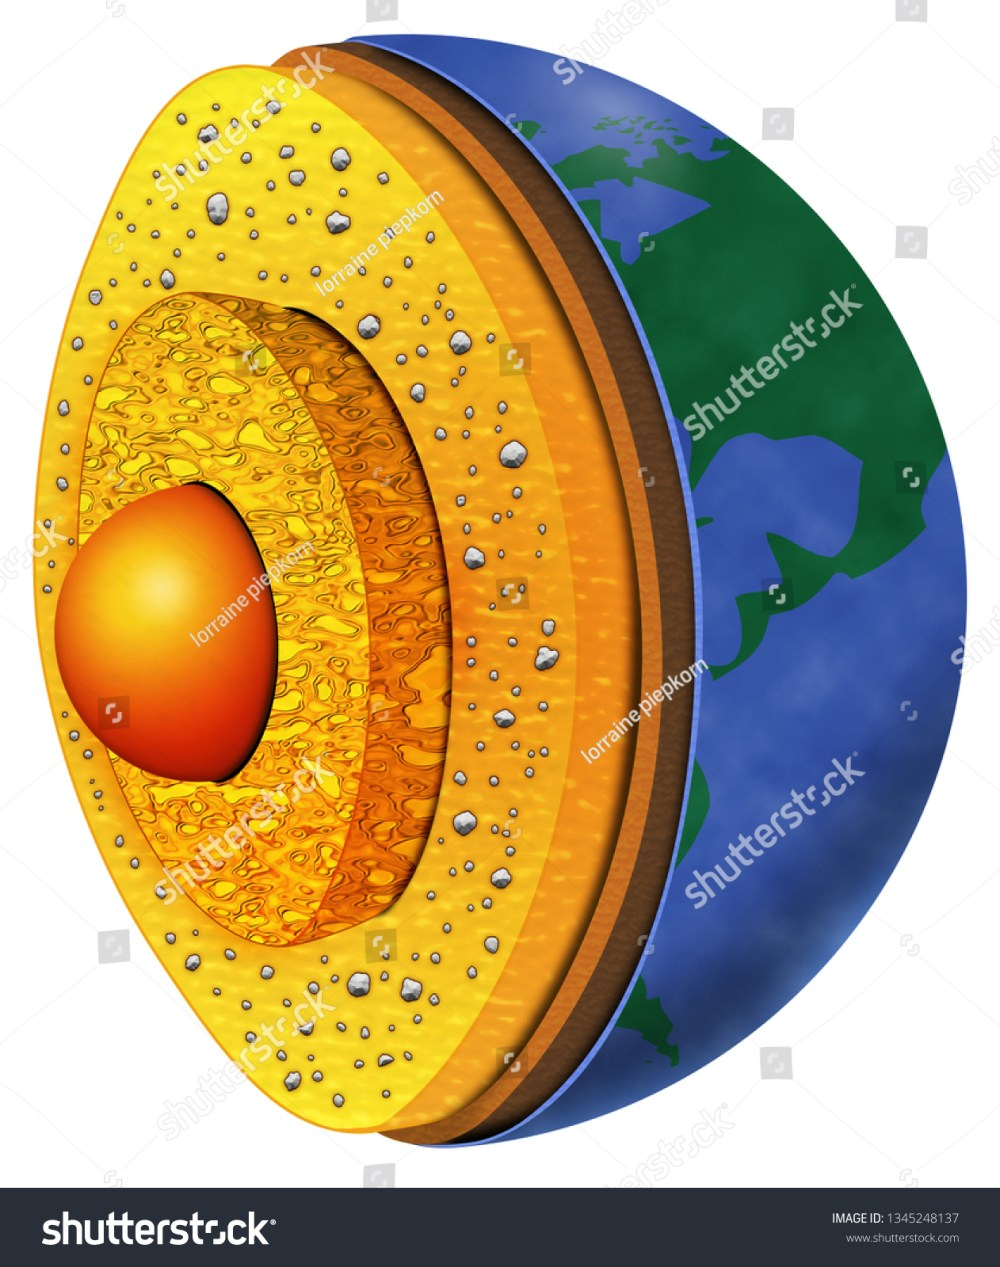 medium resolution of diagram of earth s layers inner core outer core mantle